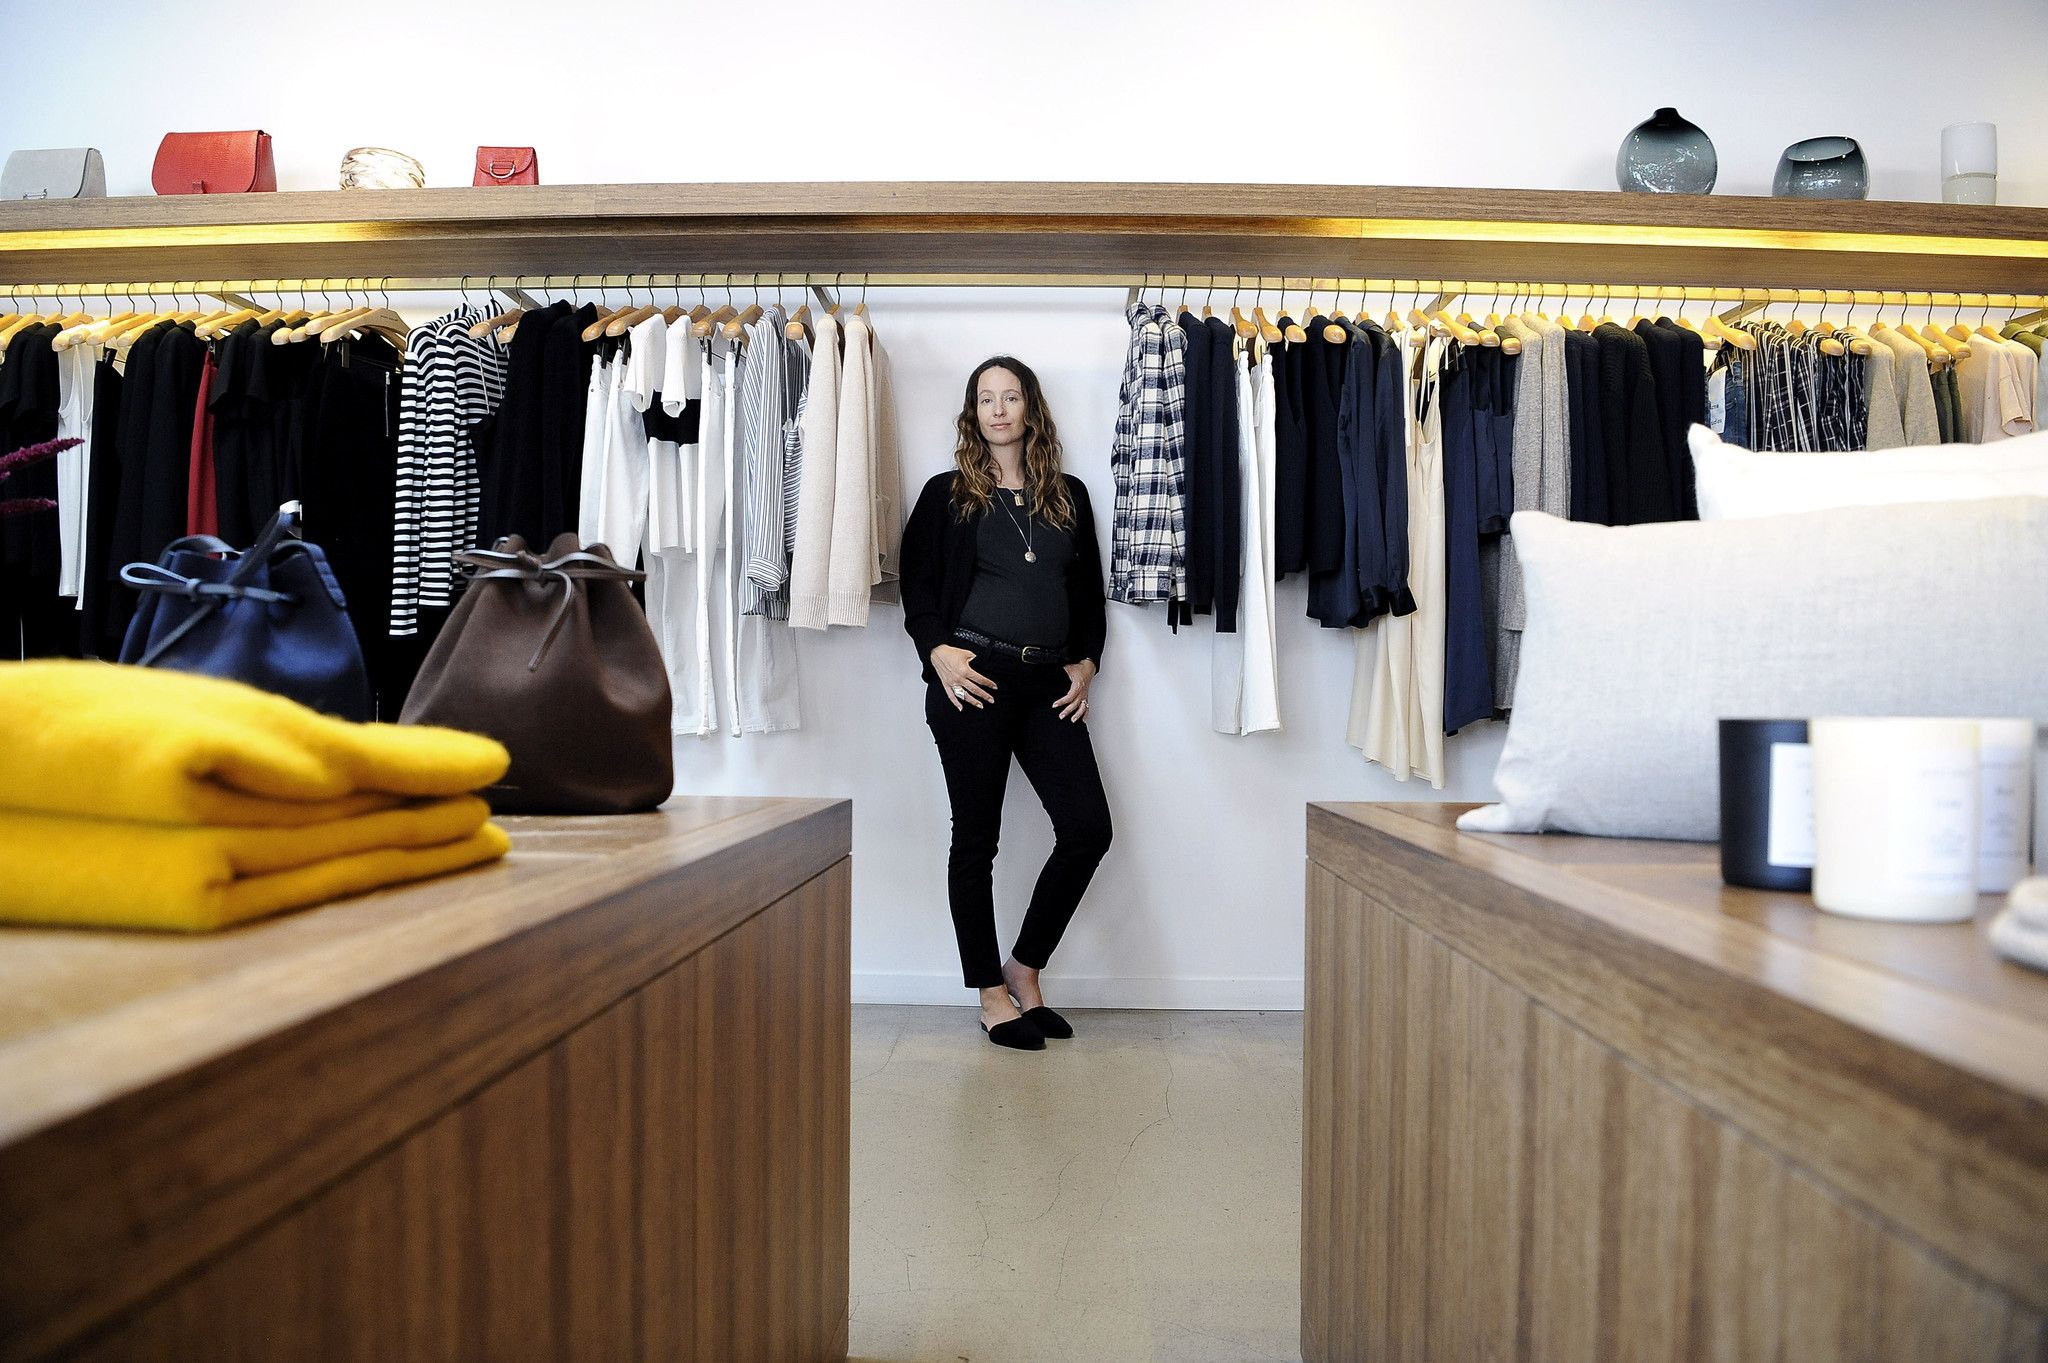 Fashion in L.A. beats to its own drum, and now the world is listening